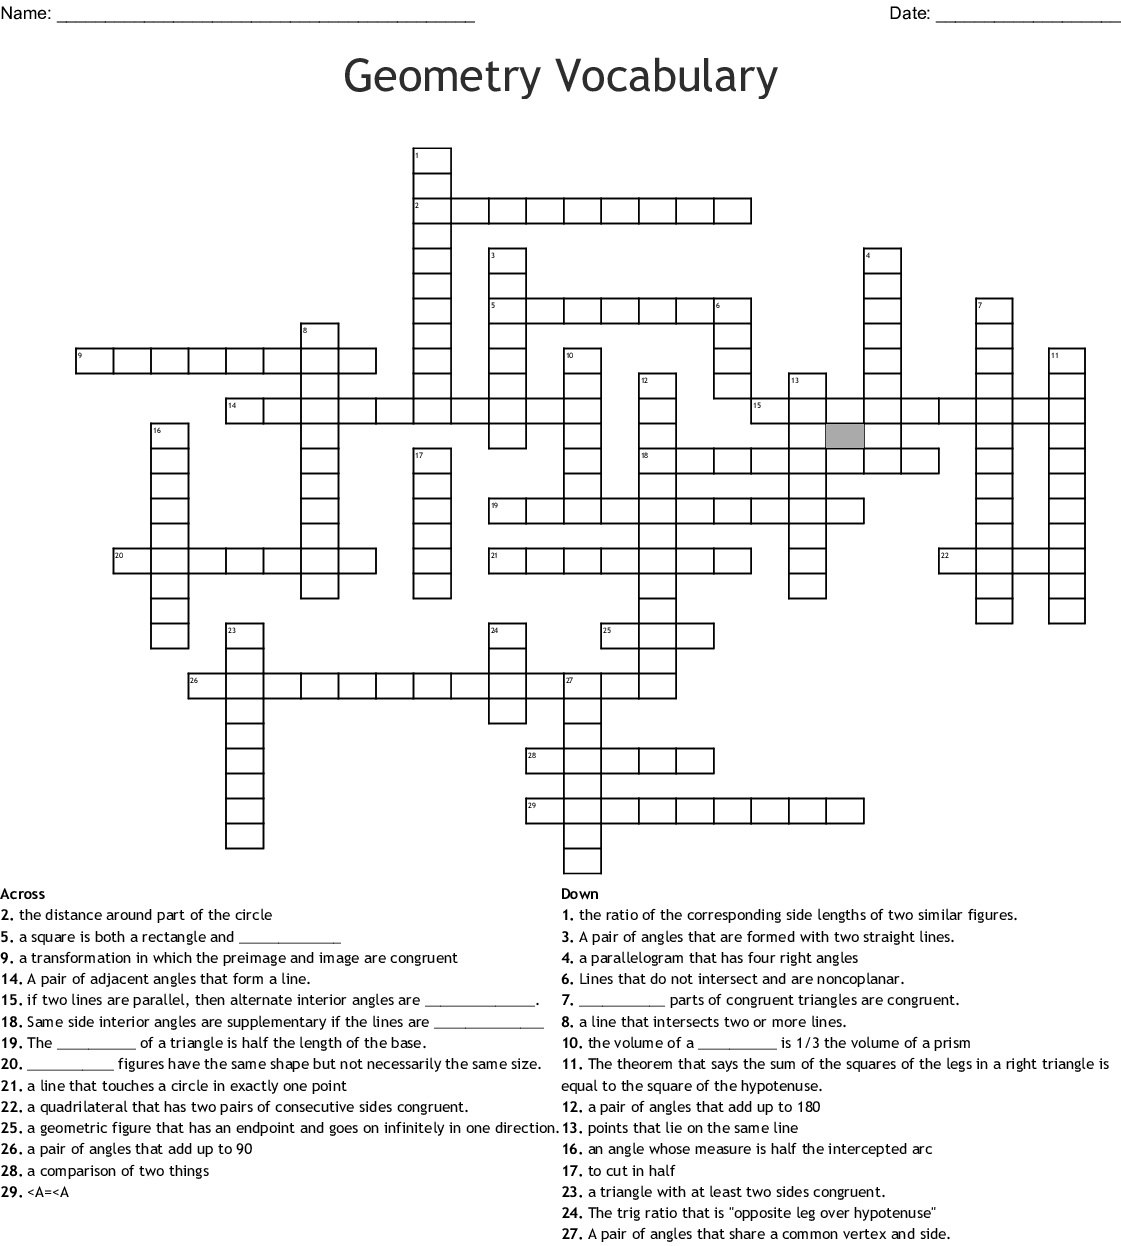 Geometry Word Search